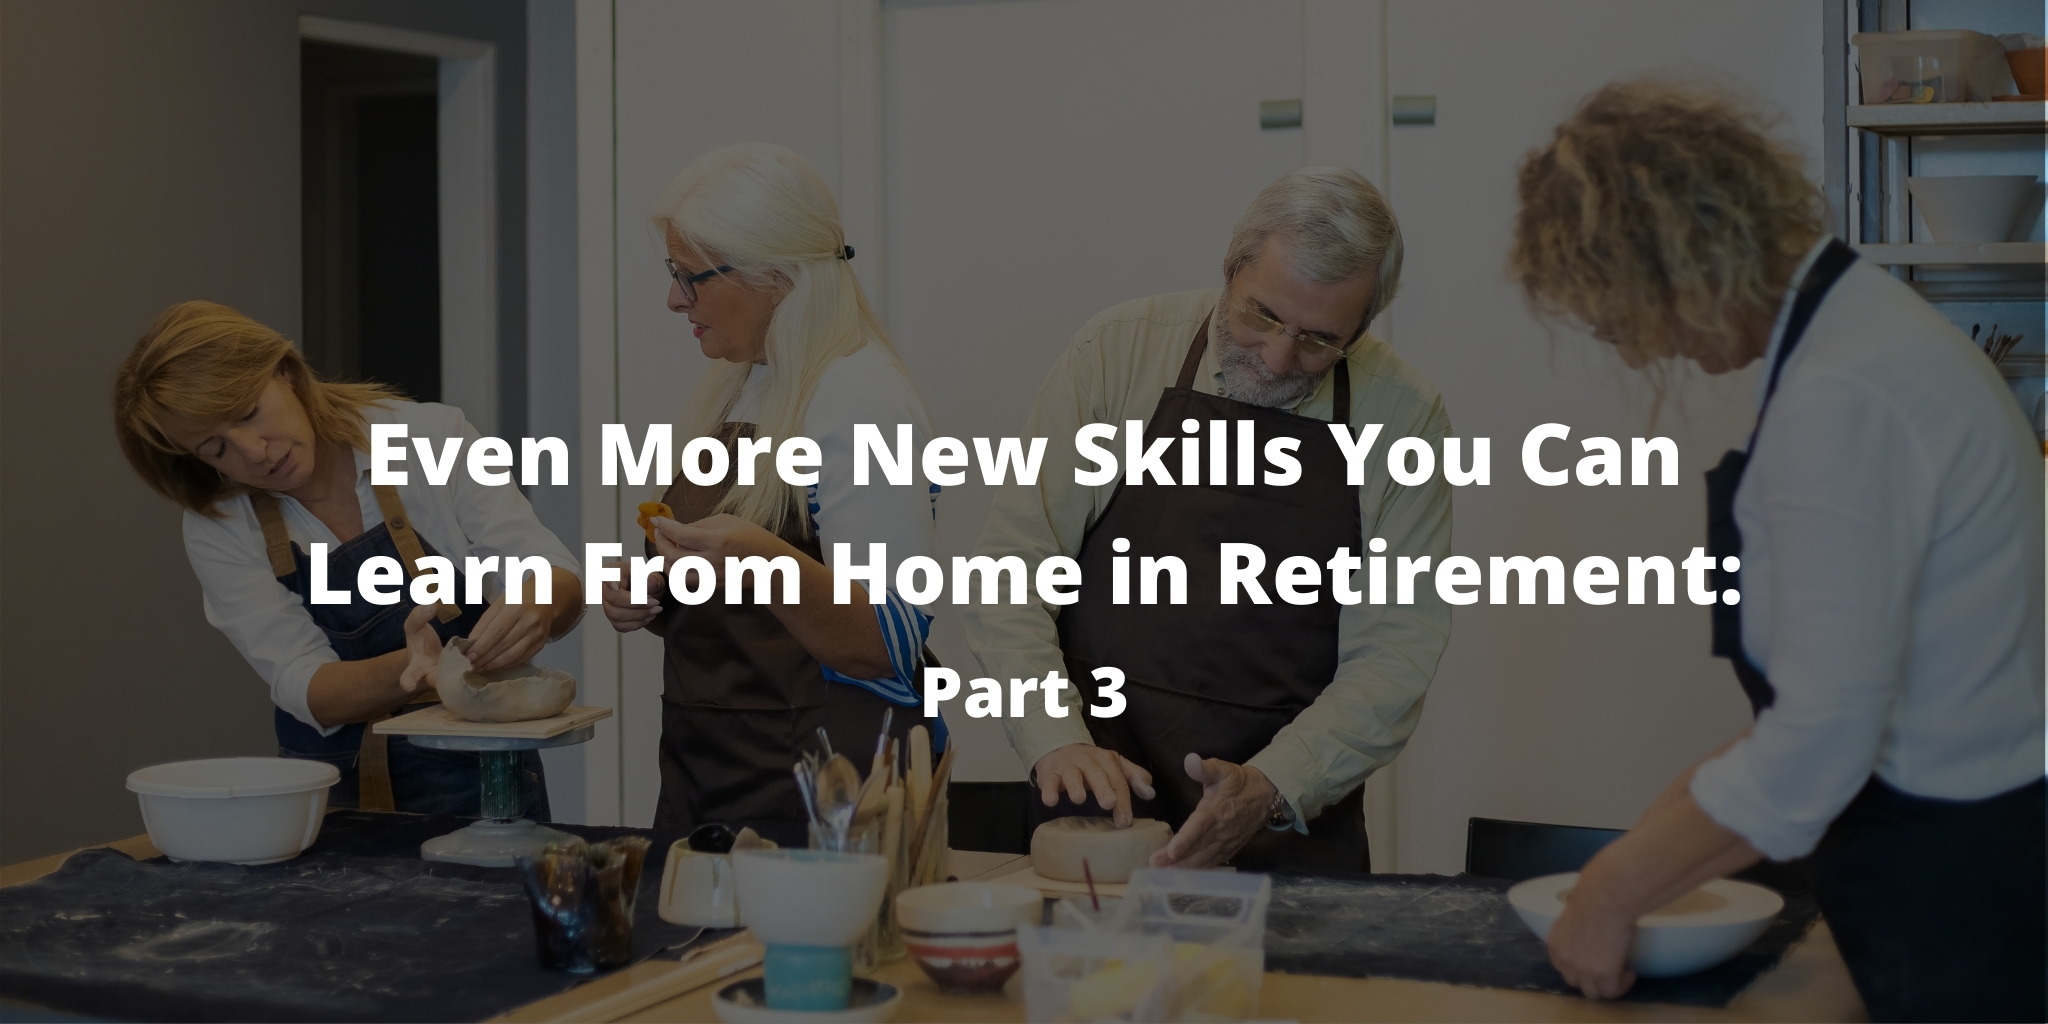 Even More New Skills You Can Learn From Home in Retirement: Part 3